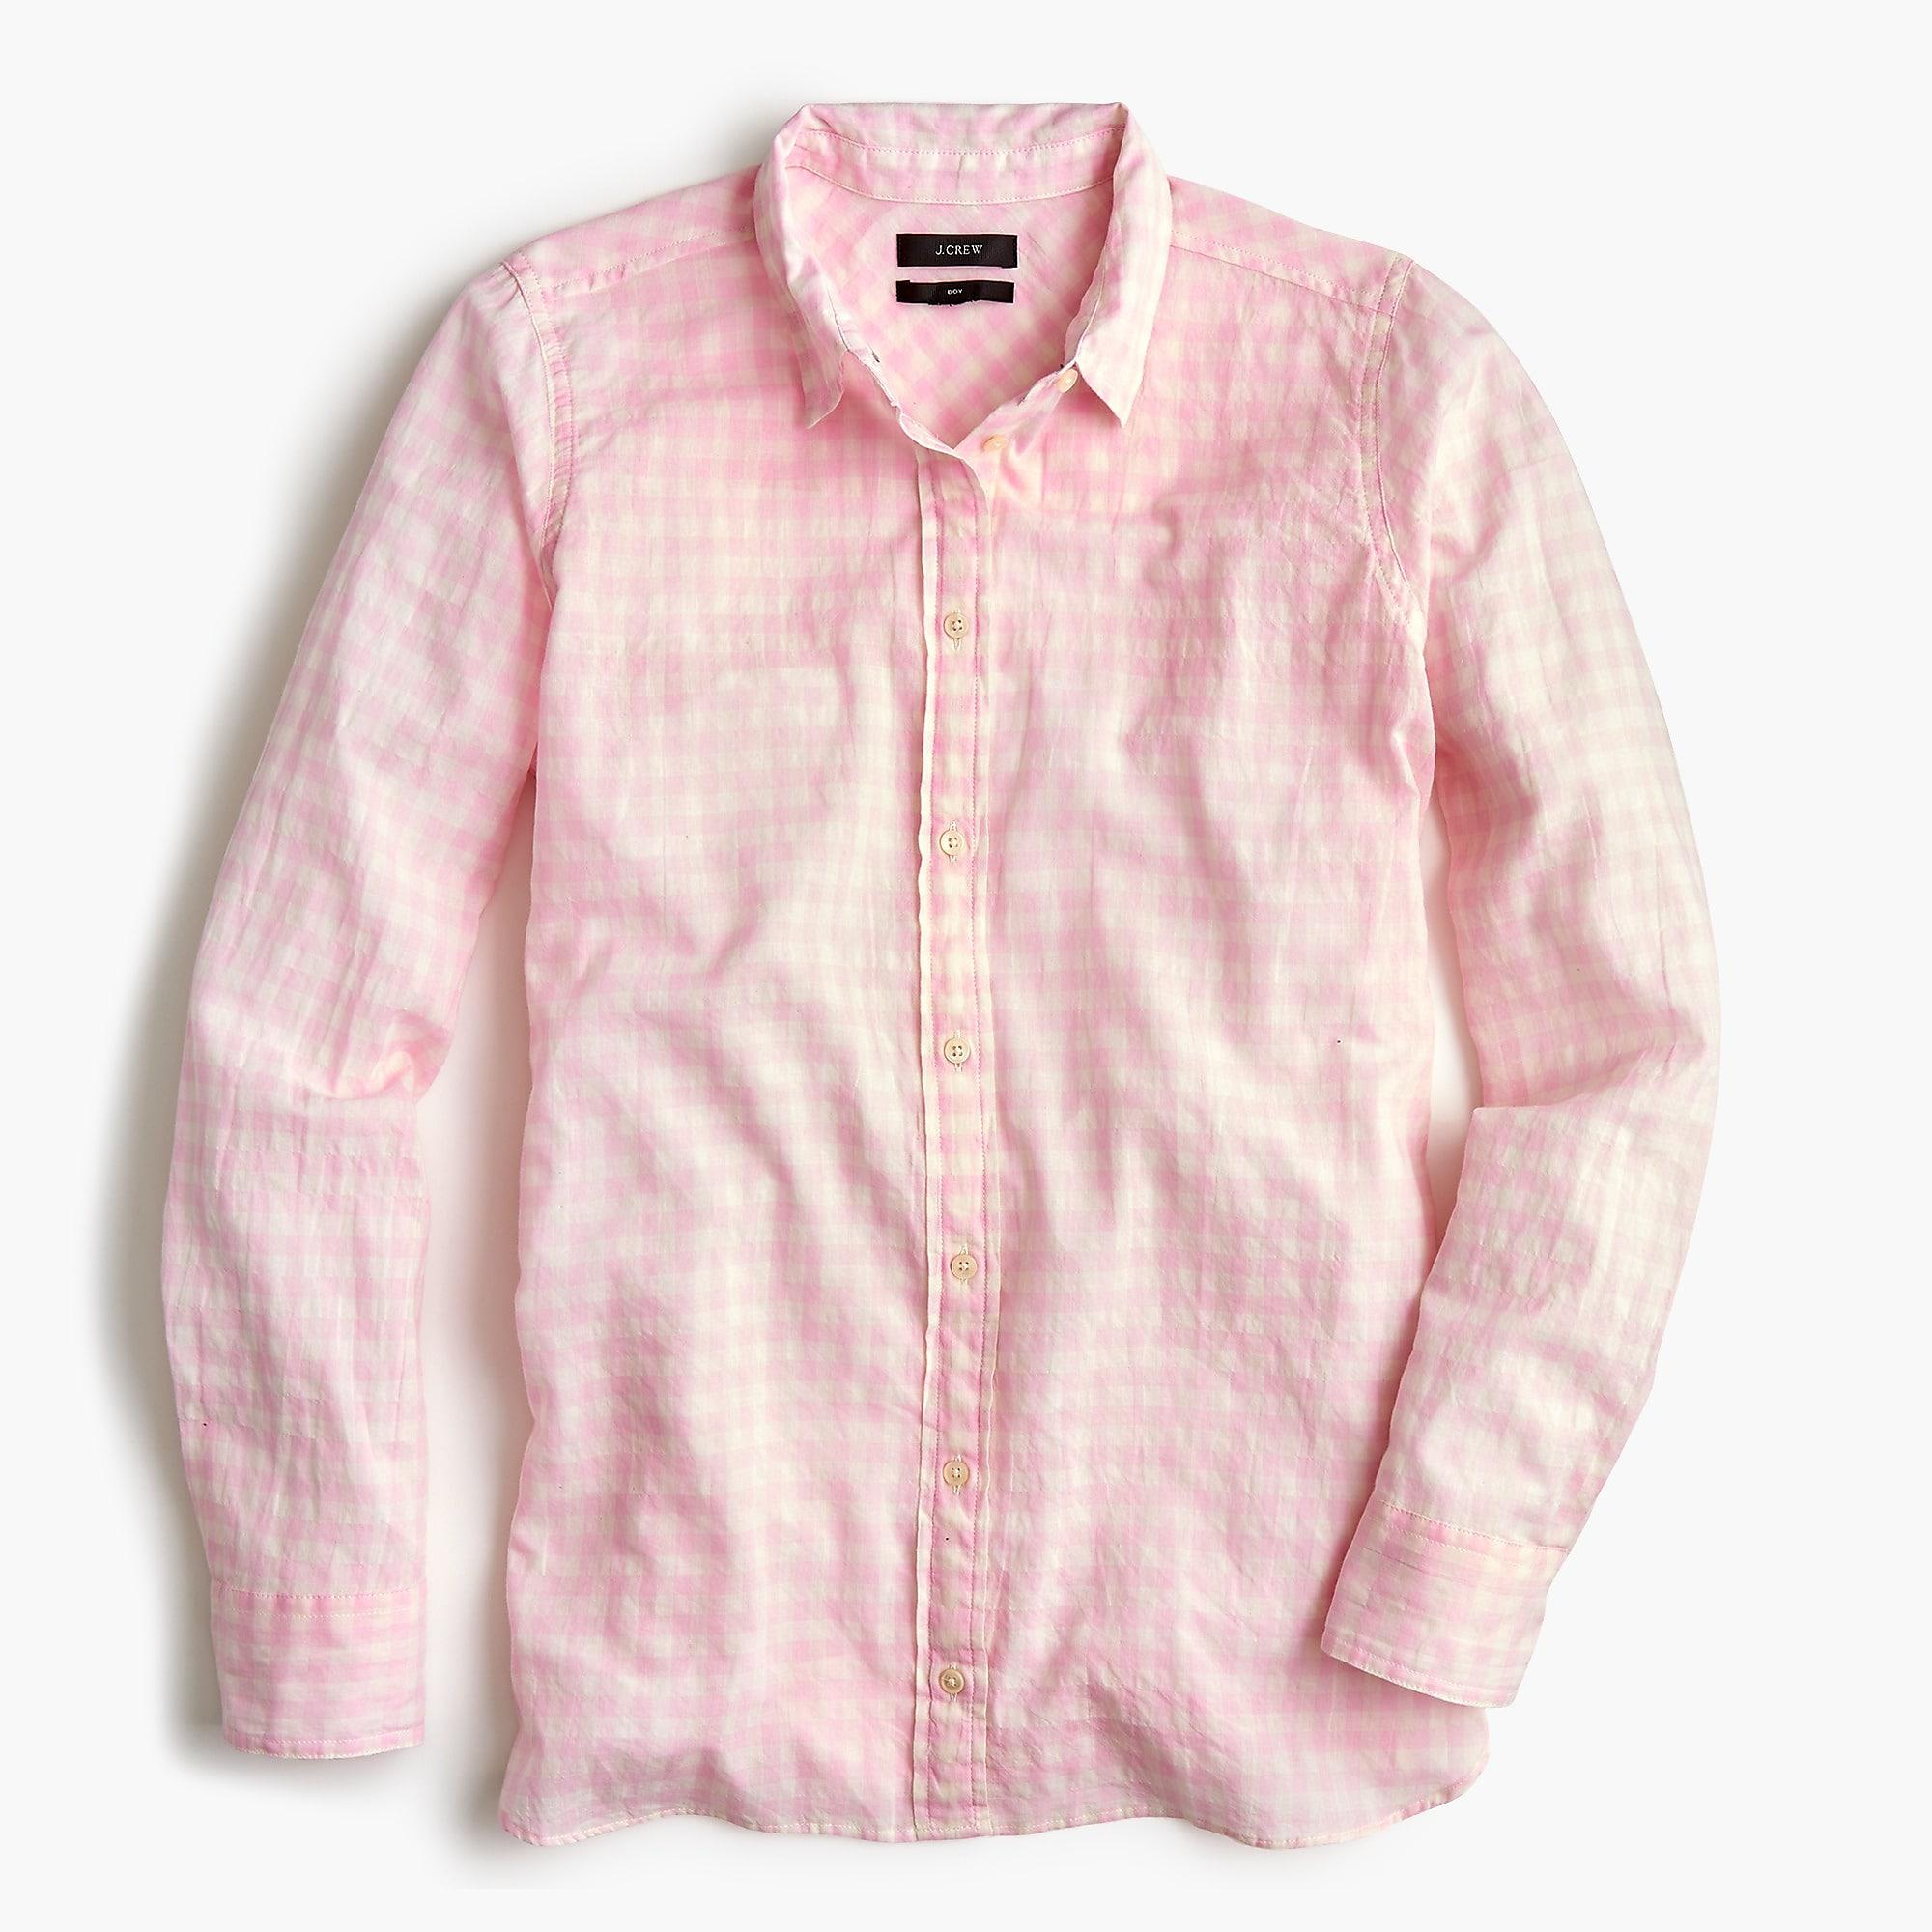 fbc99fef861 J.Crew Petite Classic-fit Boy Shirt In Crinkle Gingham in Pink for ...